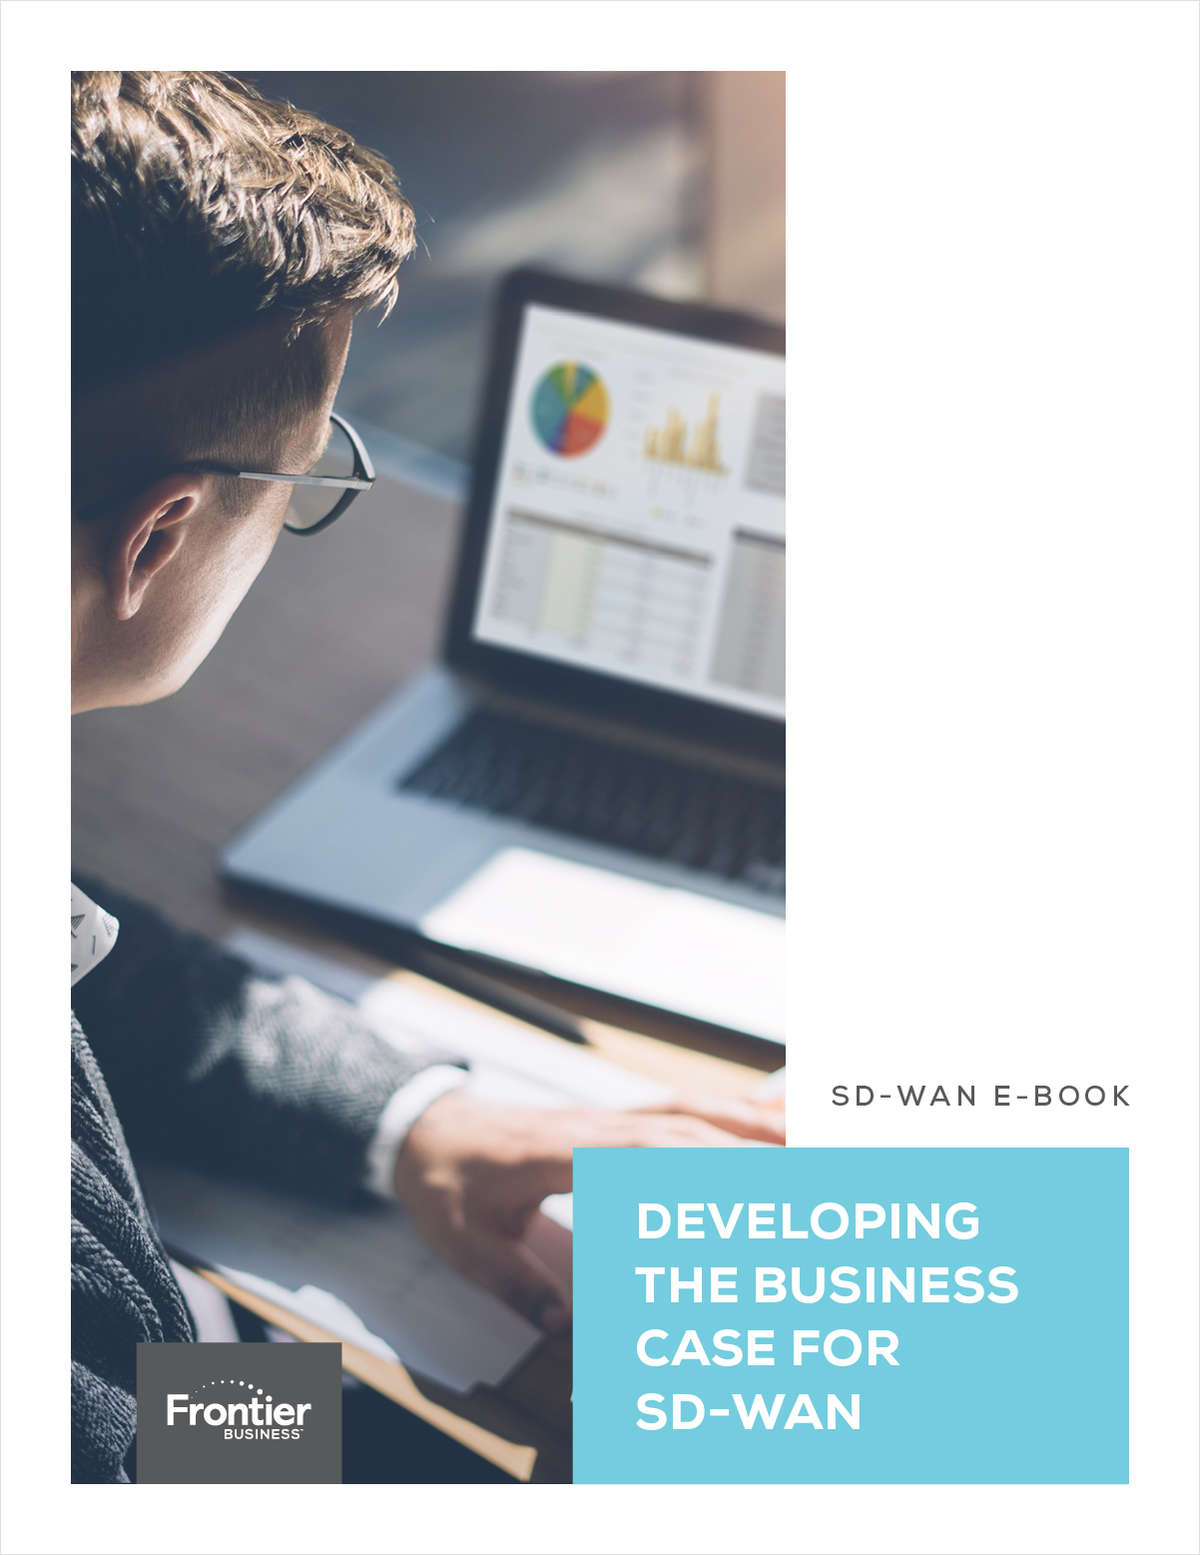 Start building your business case for SD-WAN